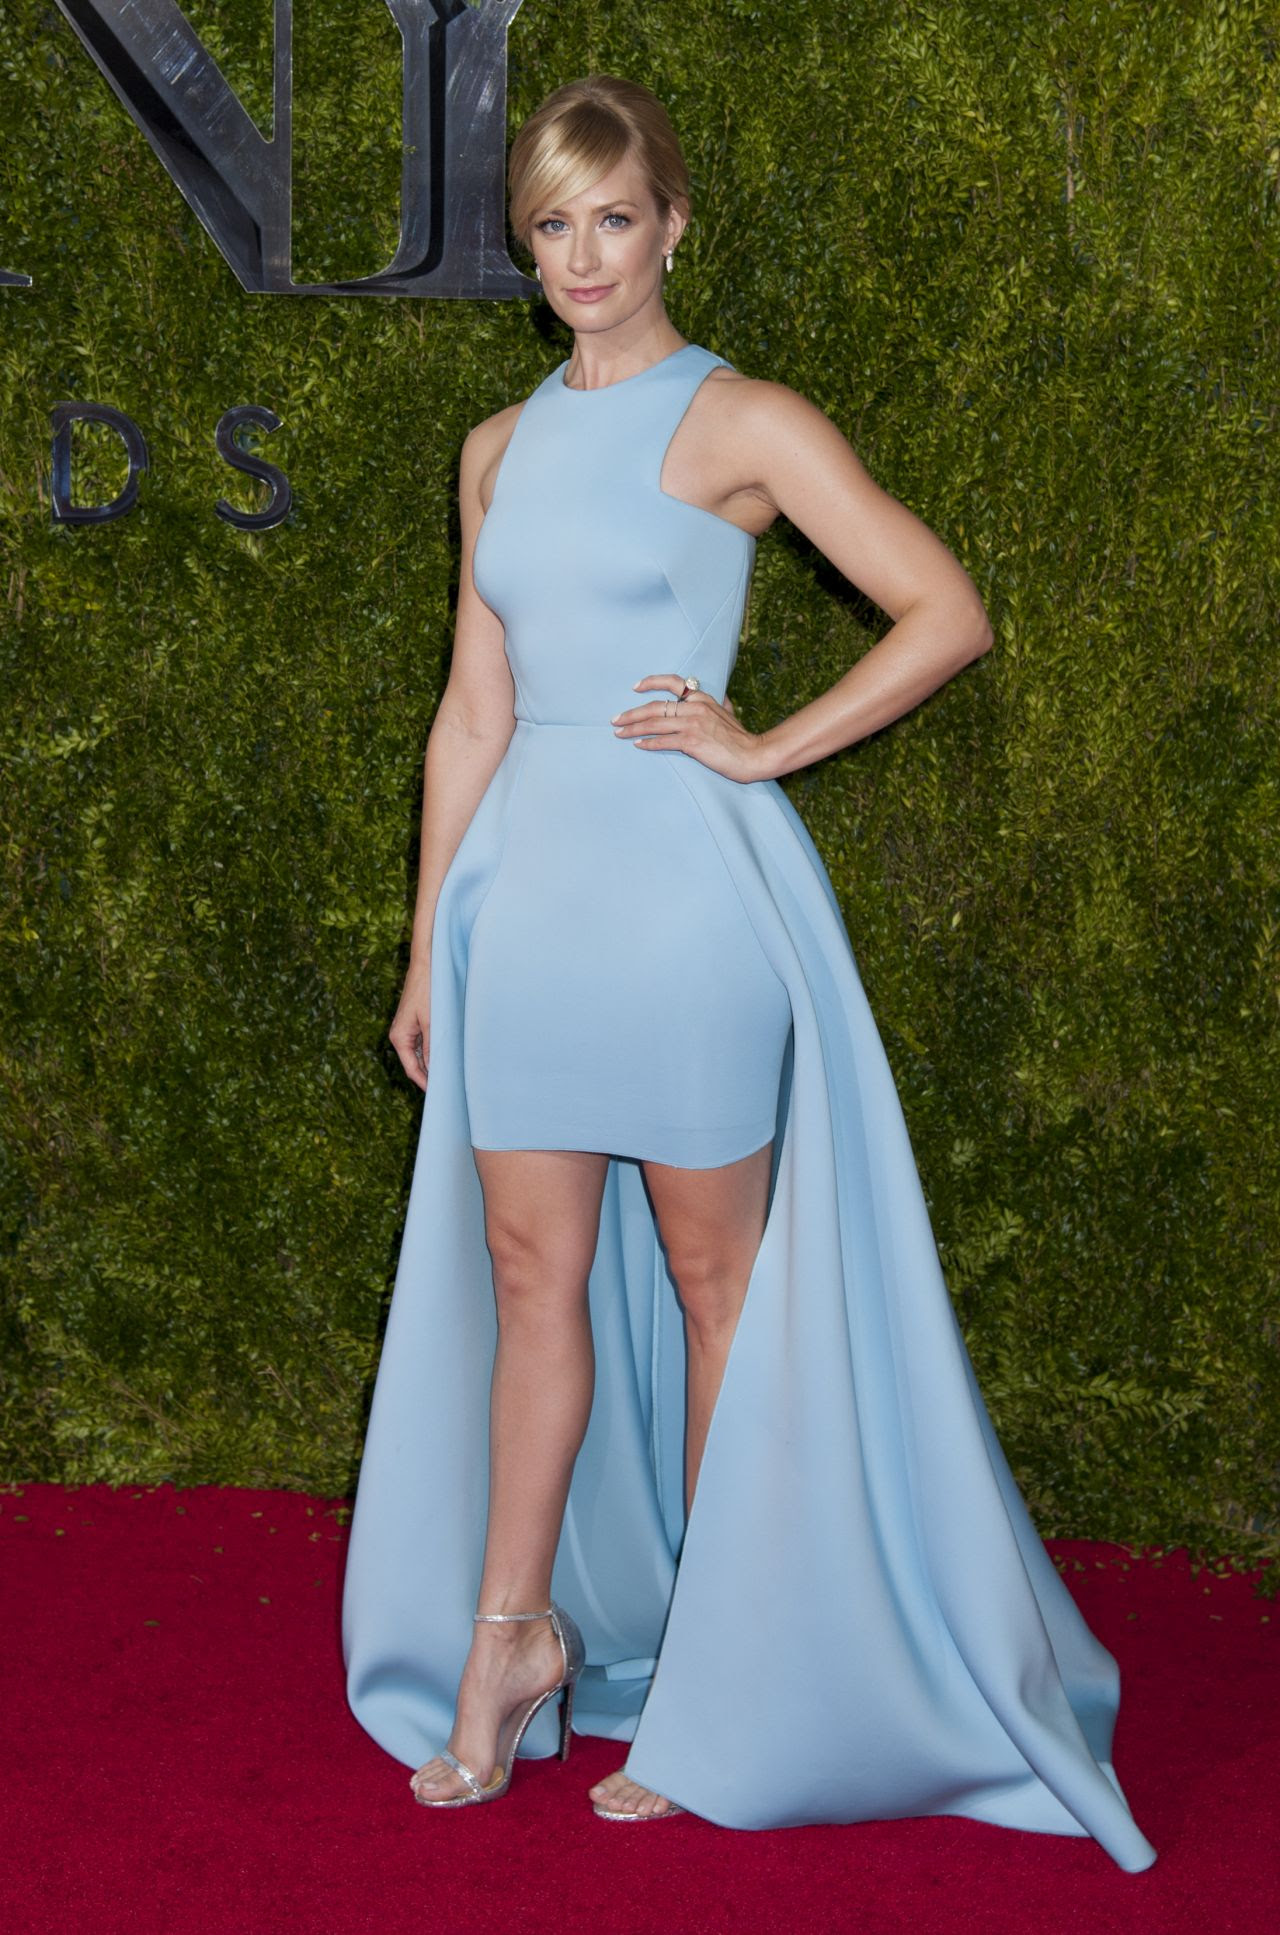 http://fashionsizzle.com/wp-content/uploads/2015/06/beth-behrs-on-red-carpet-2015-tony-awards-in-new-york-city_31.jpg